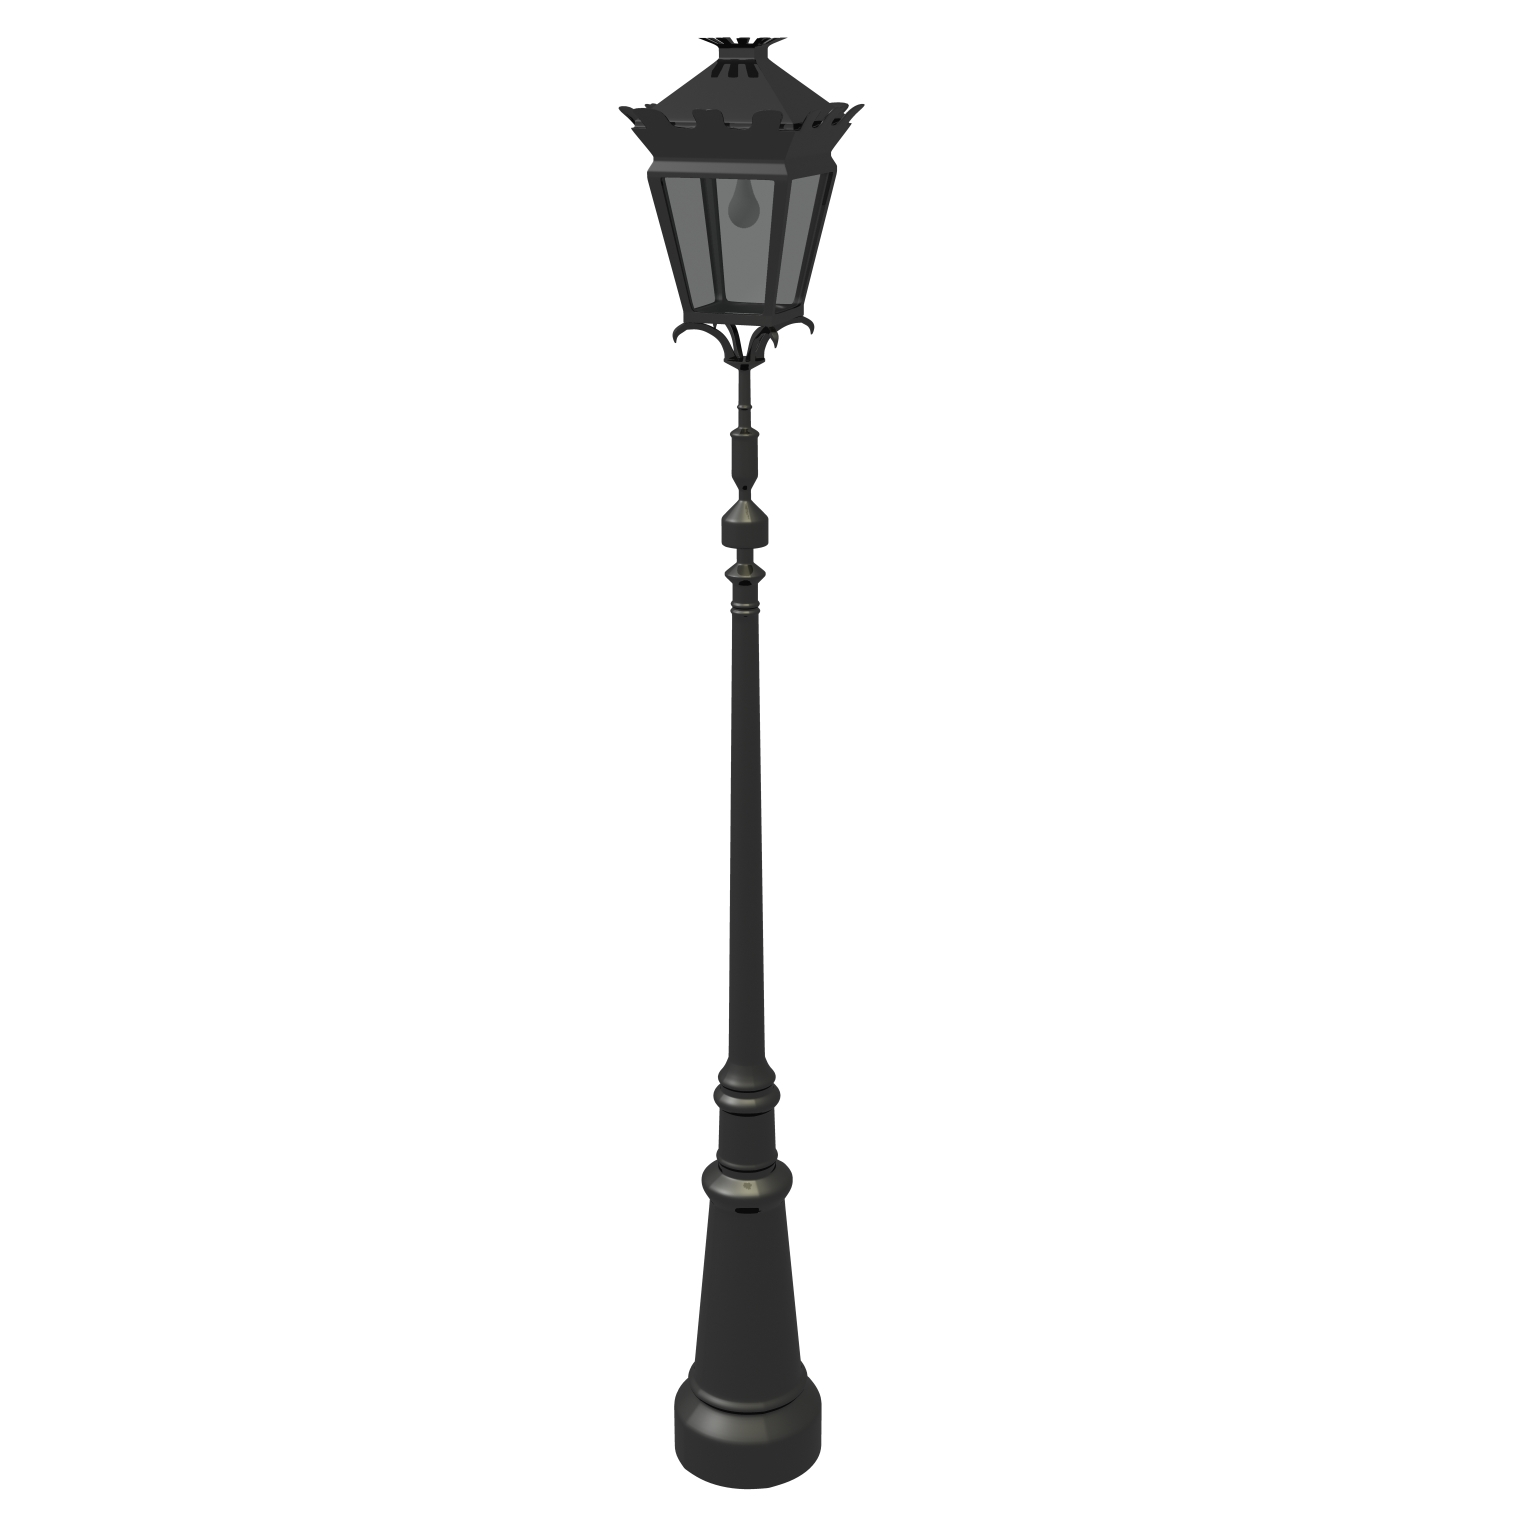 Street Lamp 3d Model Streets Material ma mb obj AR VR for Png Street Lamp  110zmd